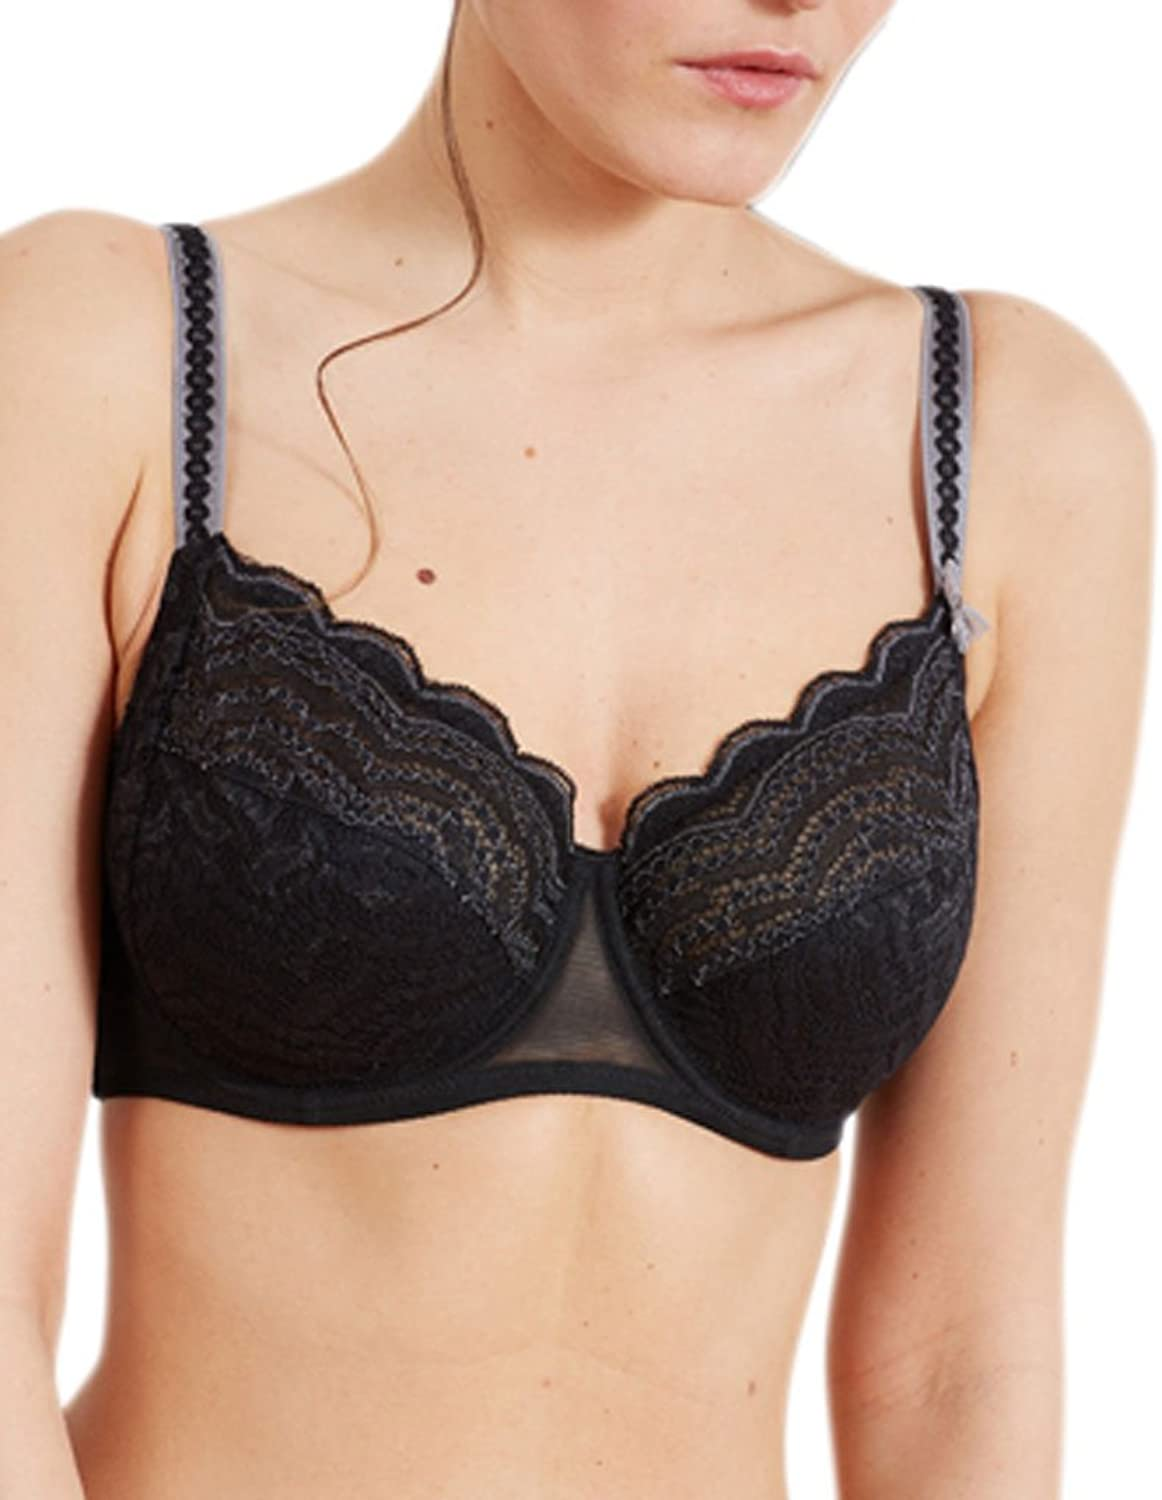 Barbara 222512 Women's Aventure Black Lace Full Cup Bra